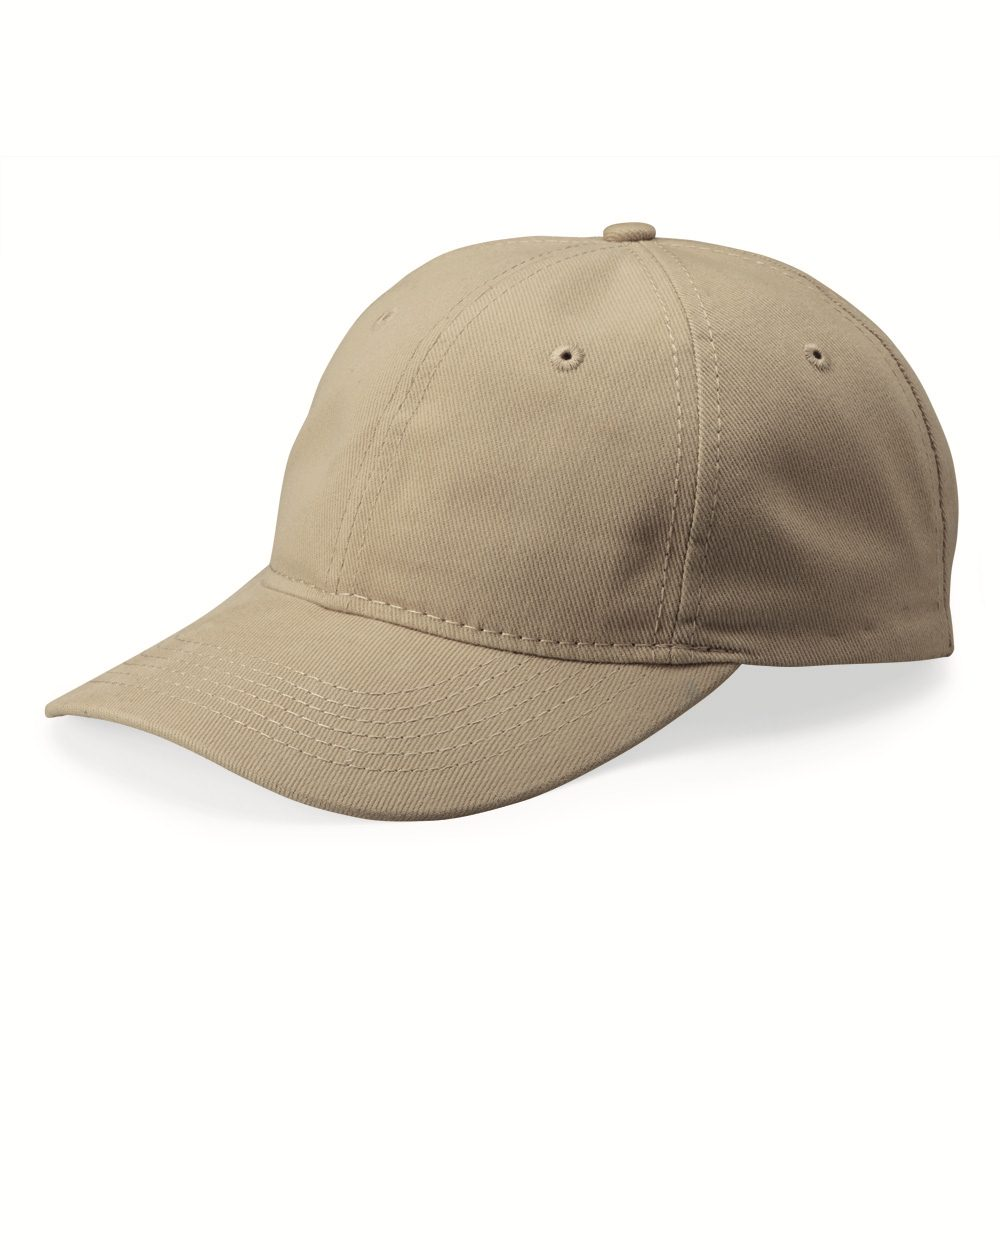 Valucap VC250-Unstructured Heavy Brushed Twill Cap with Velcro